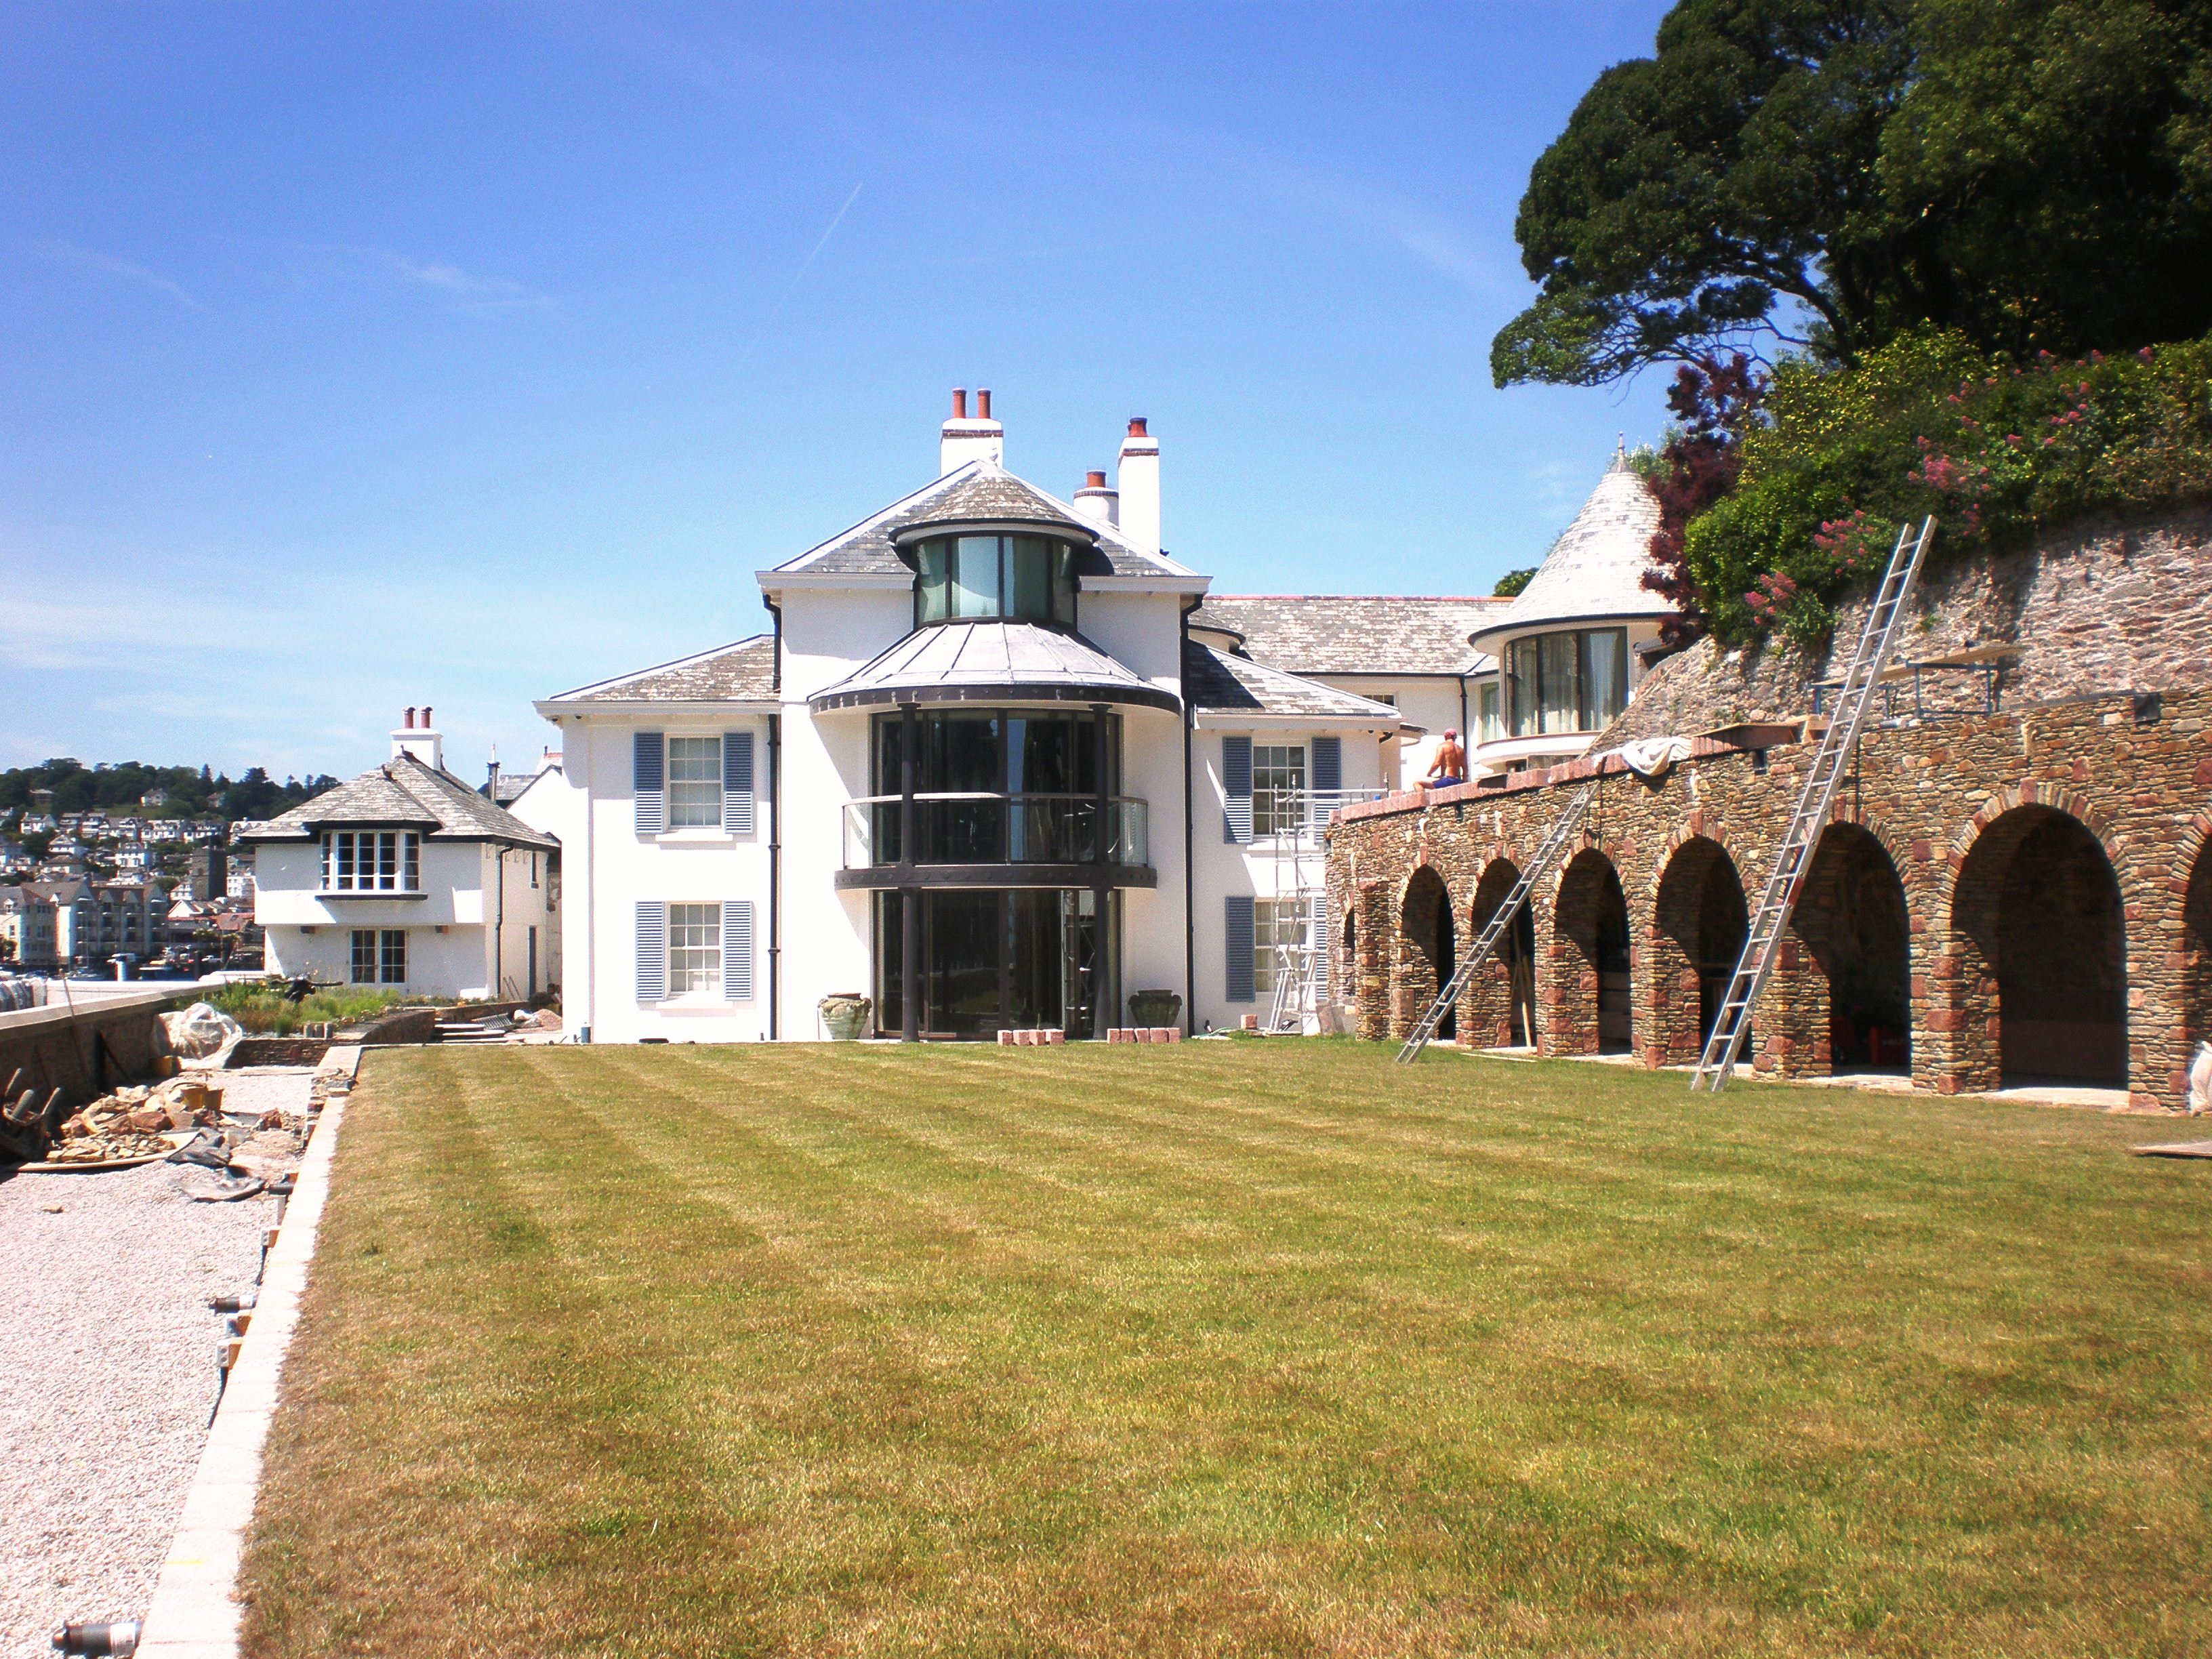 Extensions and alterations made to a Grade II listed riverside property in the South Hams